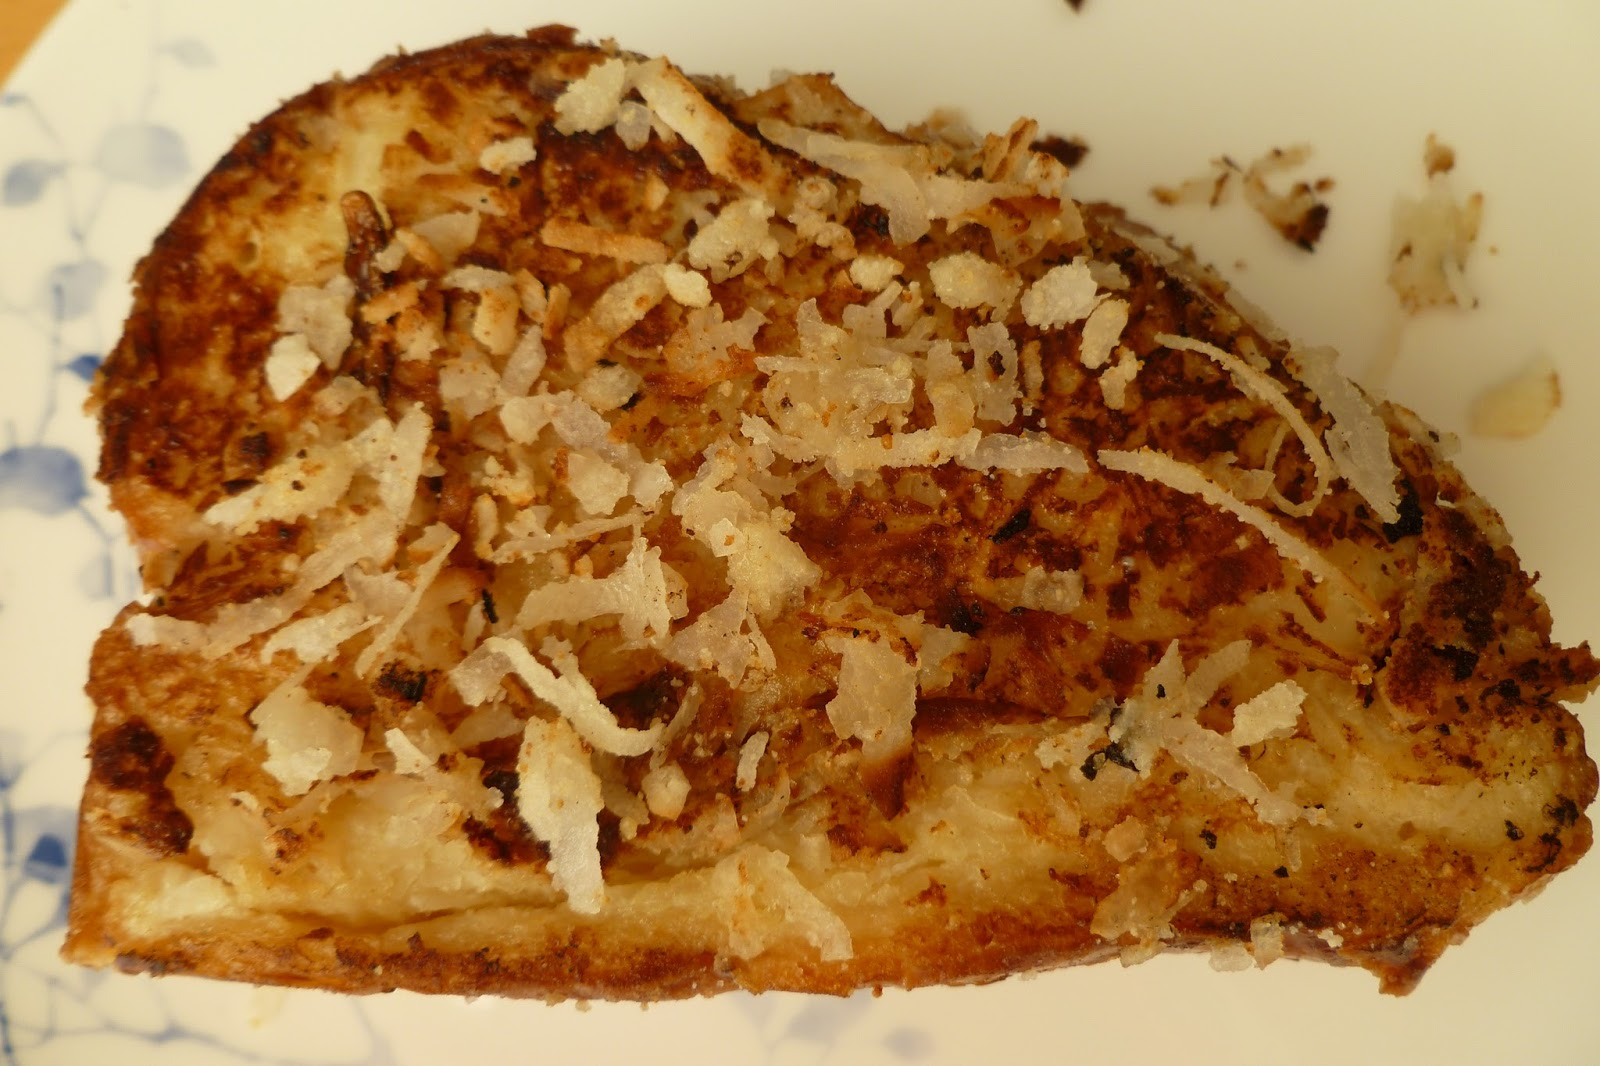 Coconut-Stuffed French Toast - made August 24, 2013, original recipe